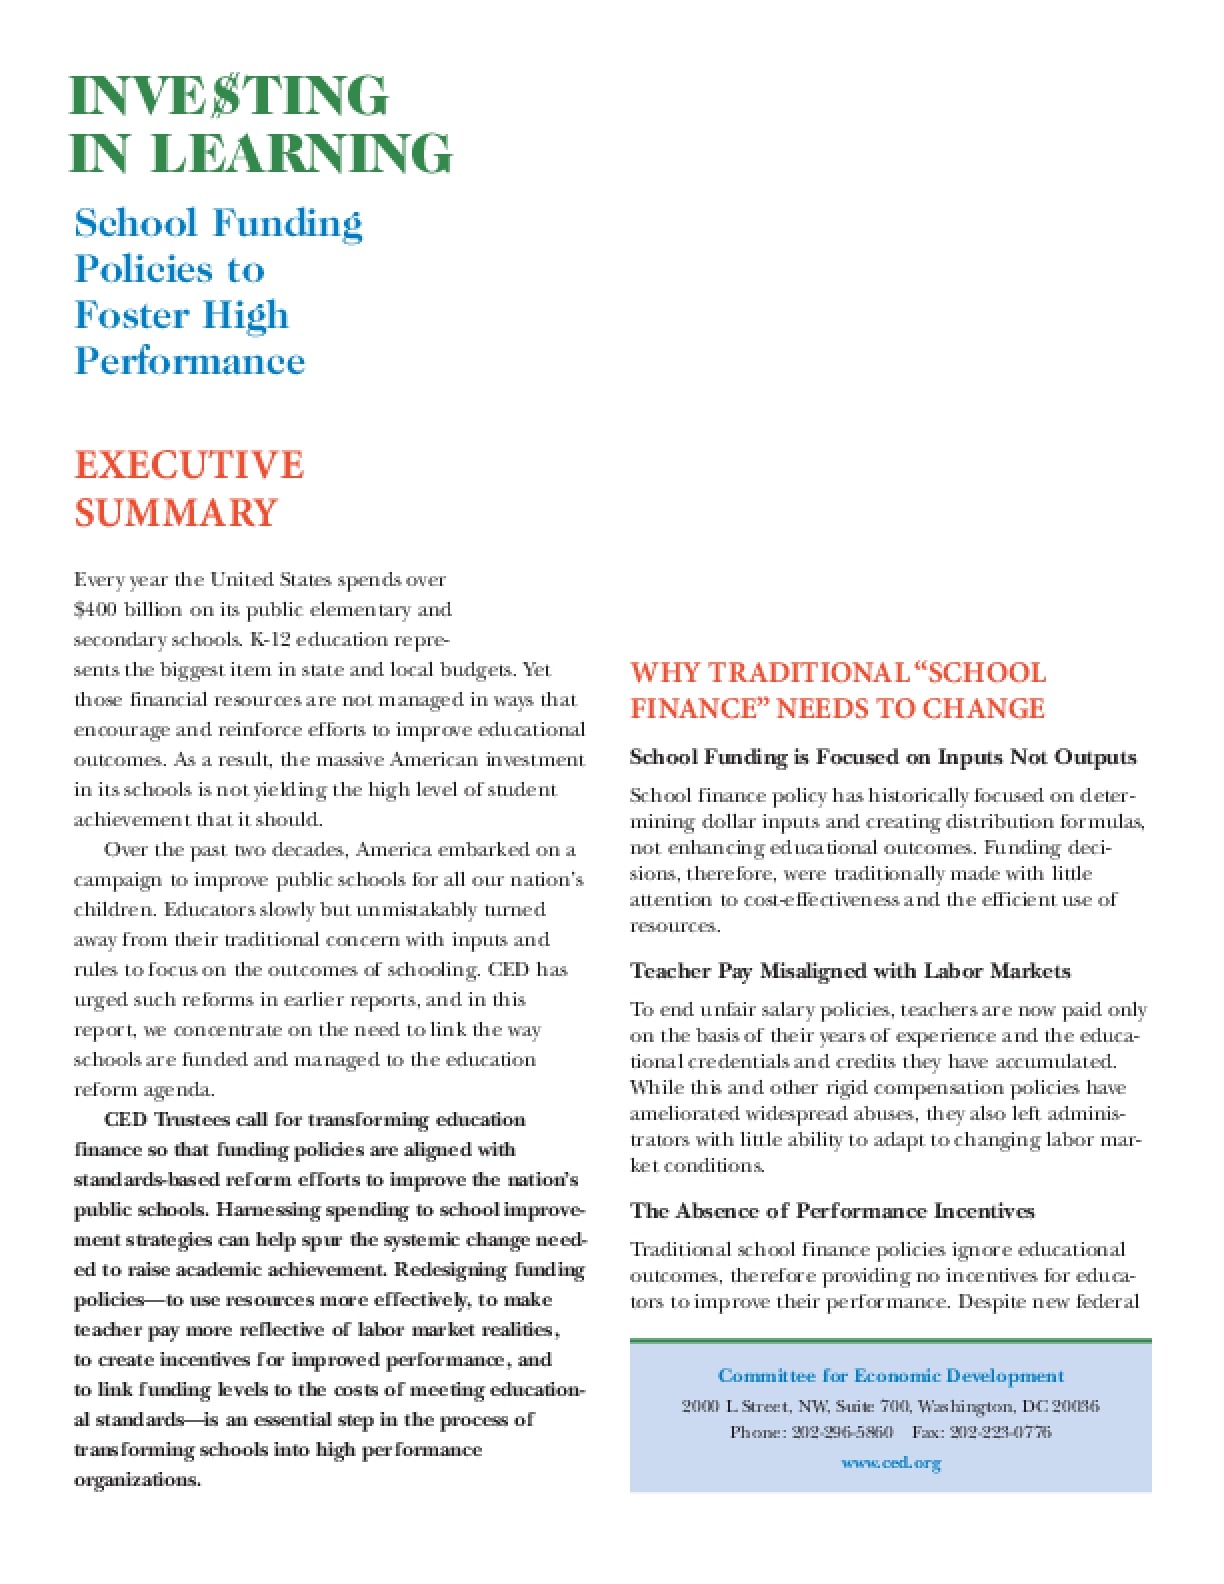 Investing in Learning: School Funding Policies to Foster High Performance - Executive Summary